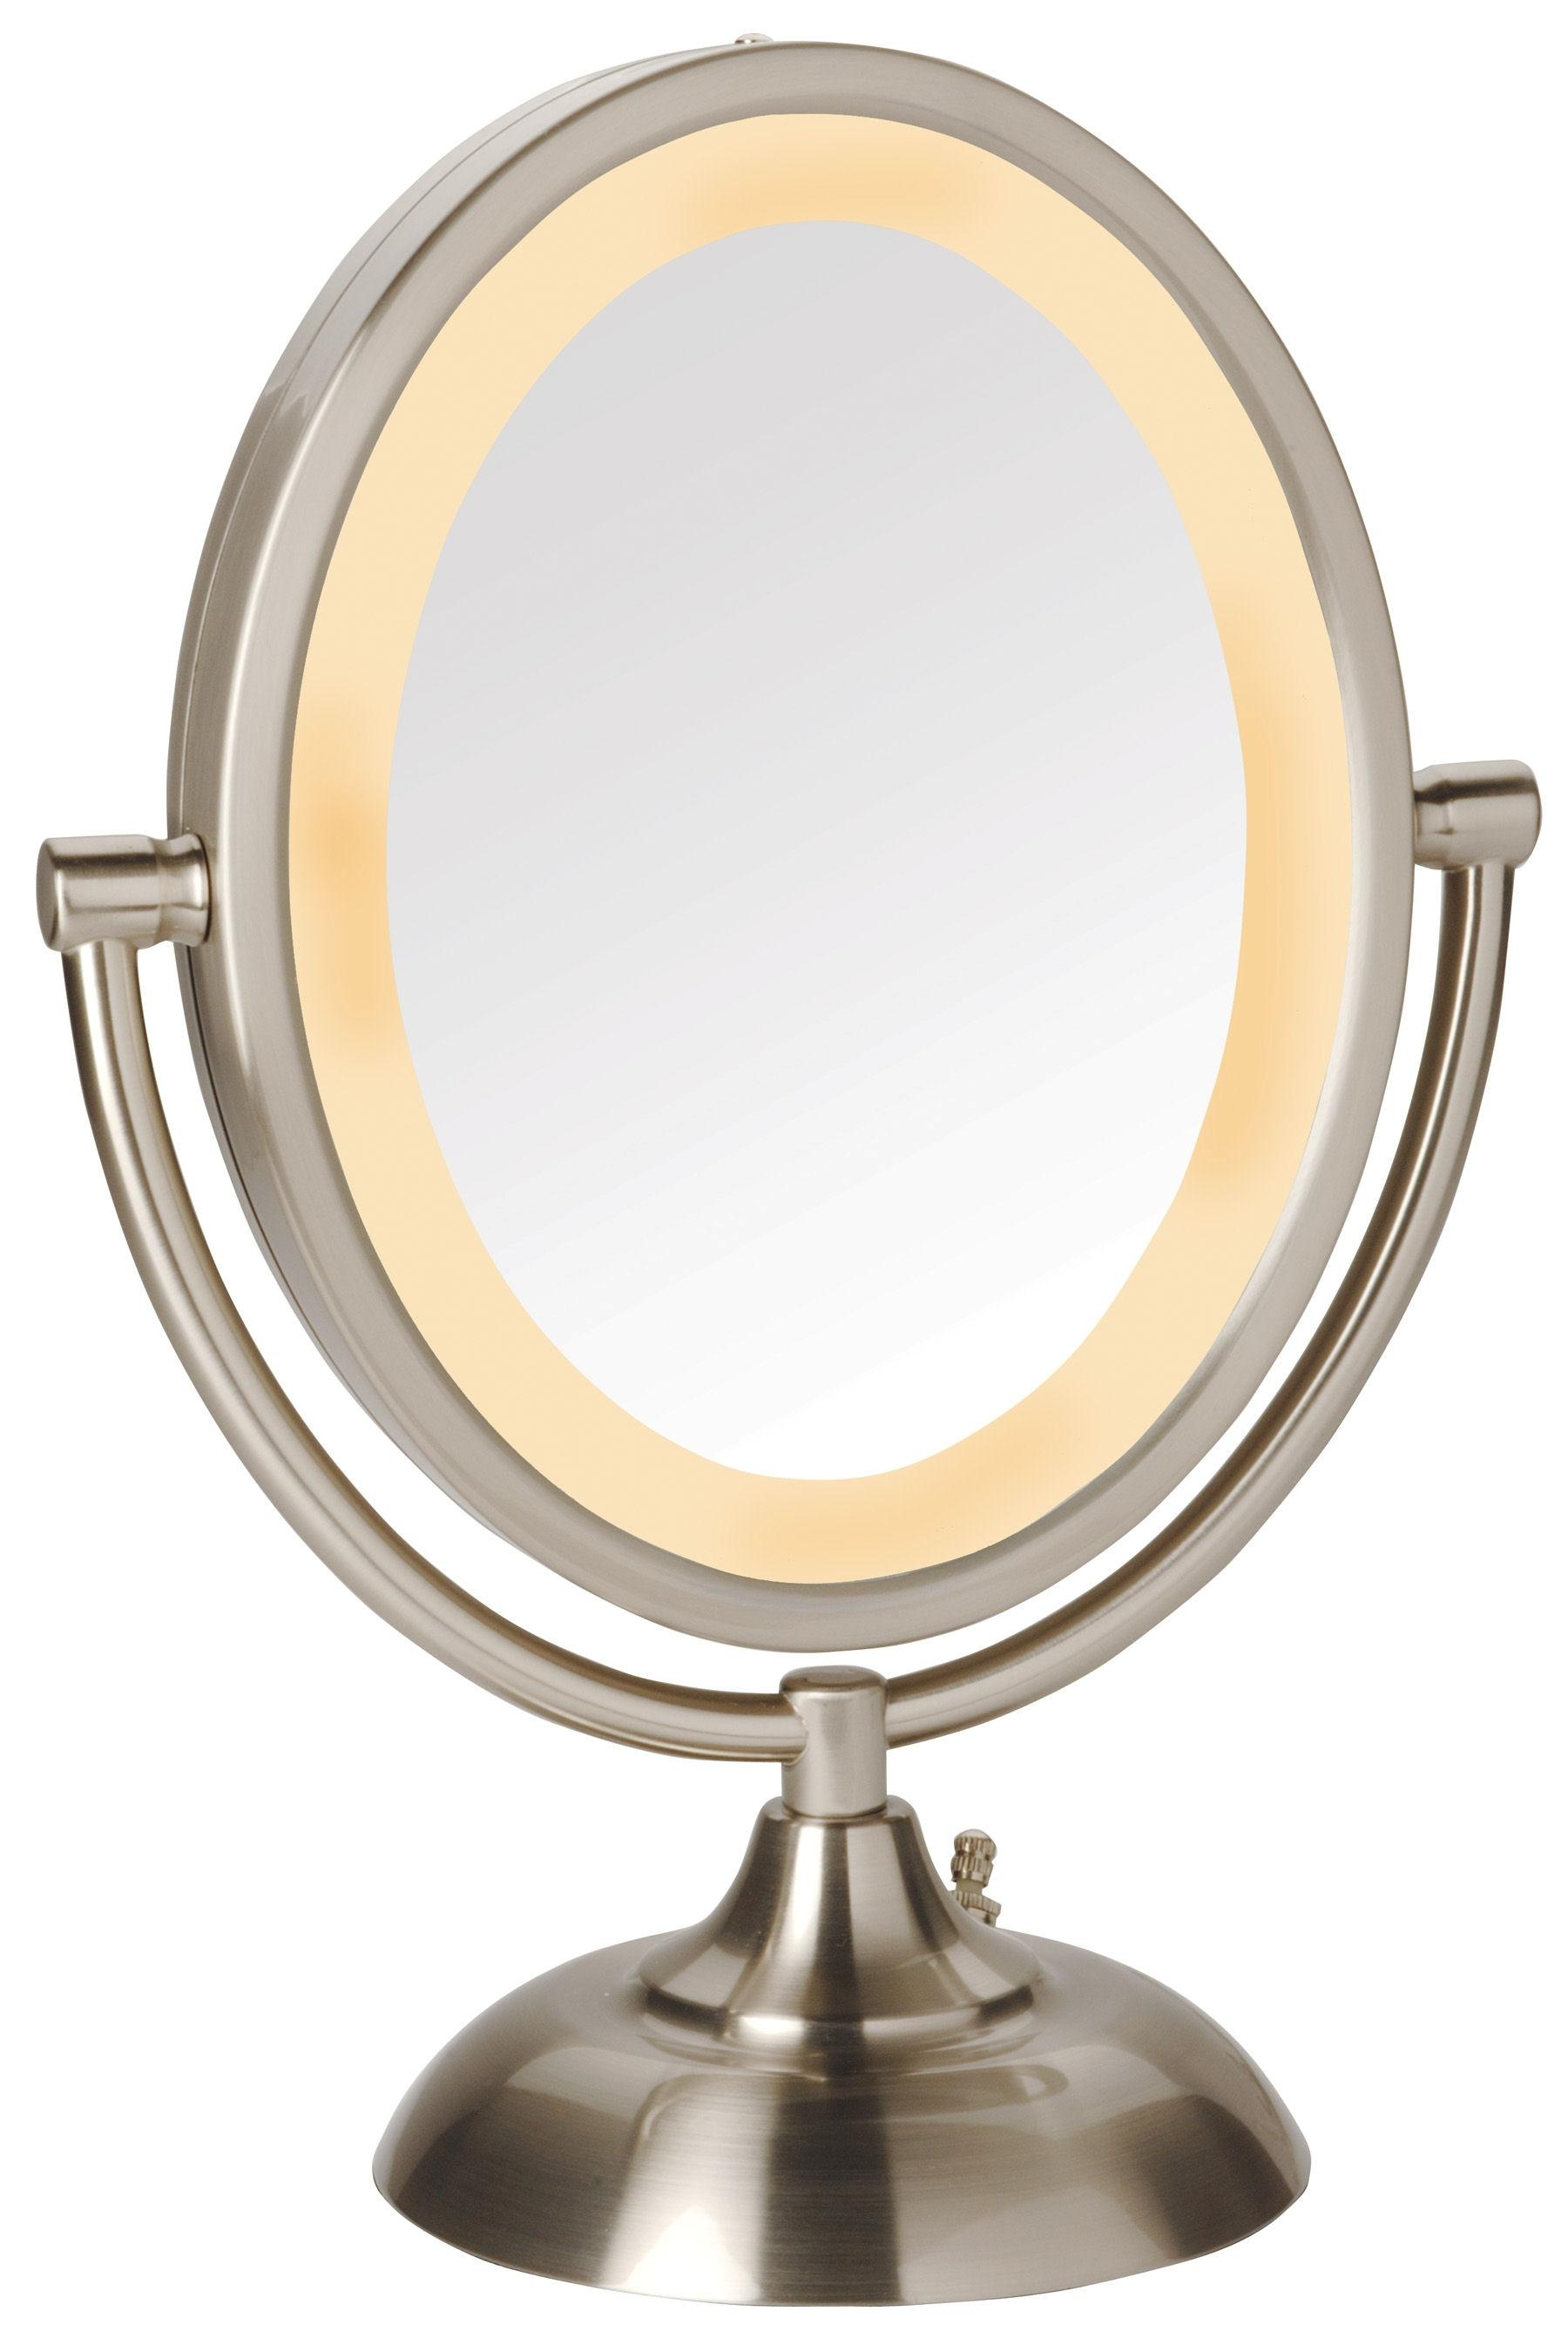 Lights For Makeup Mirror Lighted | Home Lighting Ideass31 49 Regarding Lit Makeup Mirrors (Image 18 of 20)